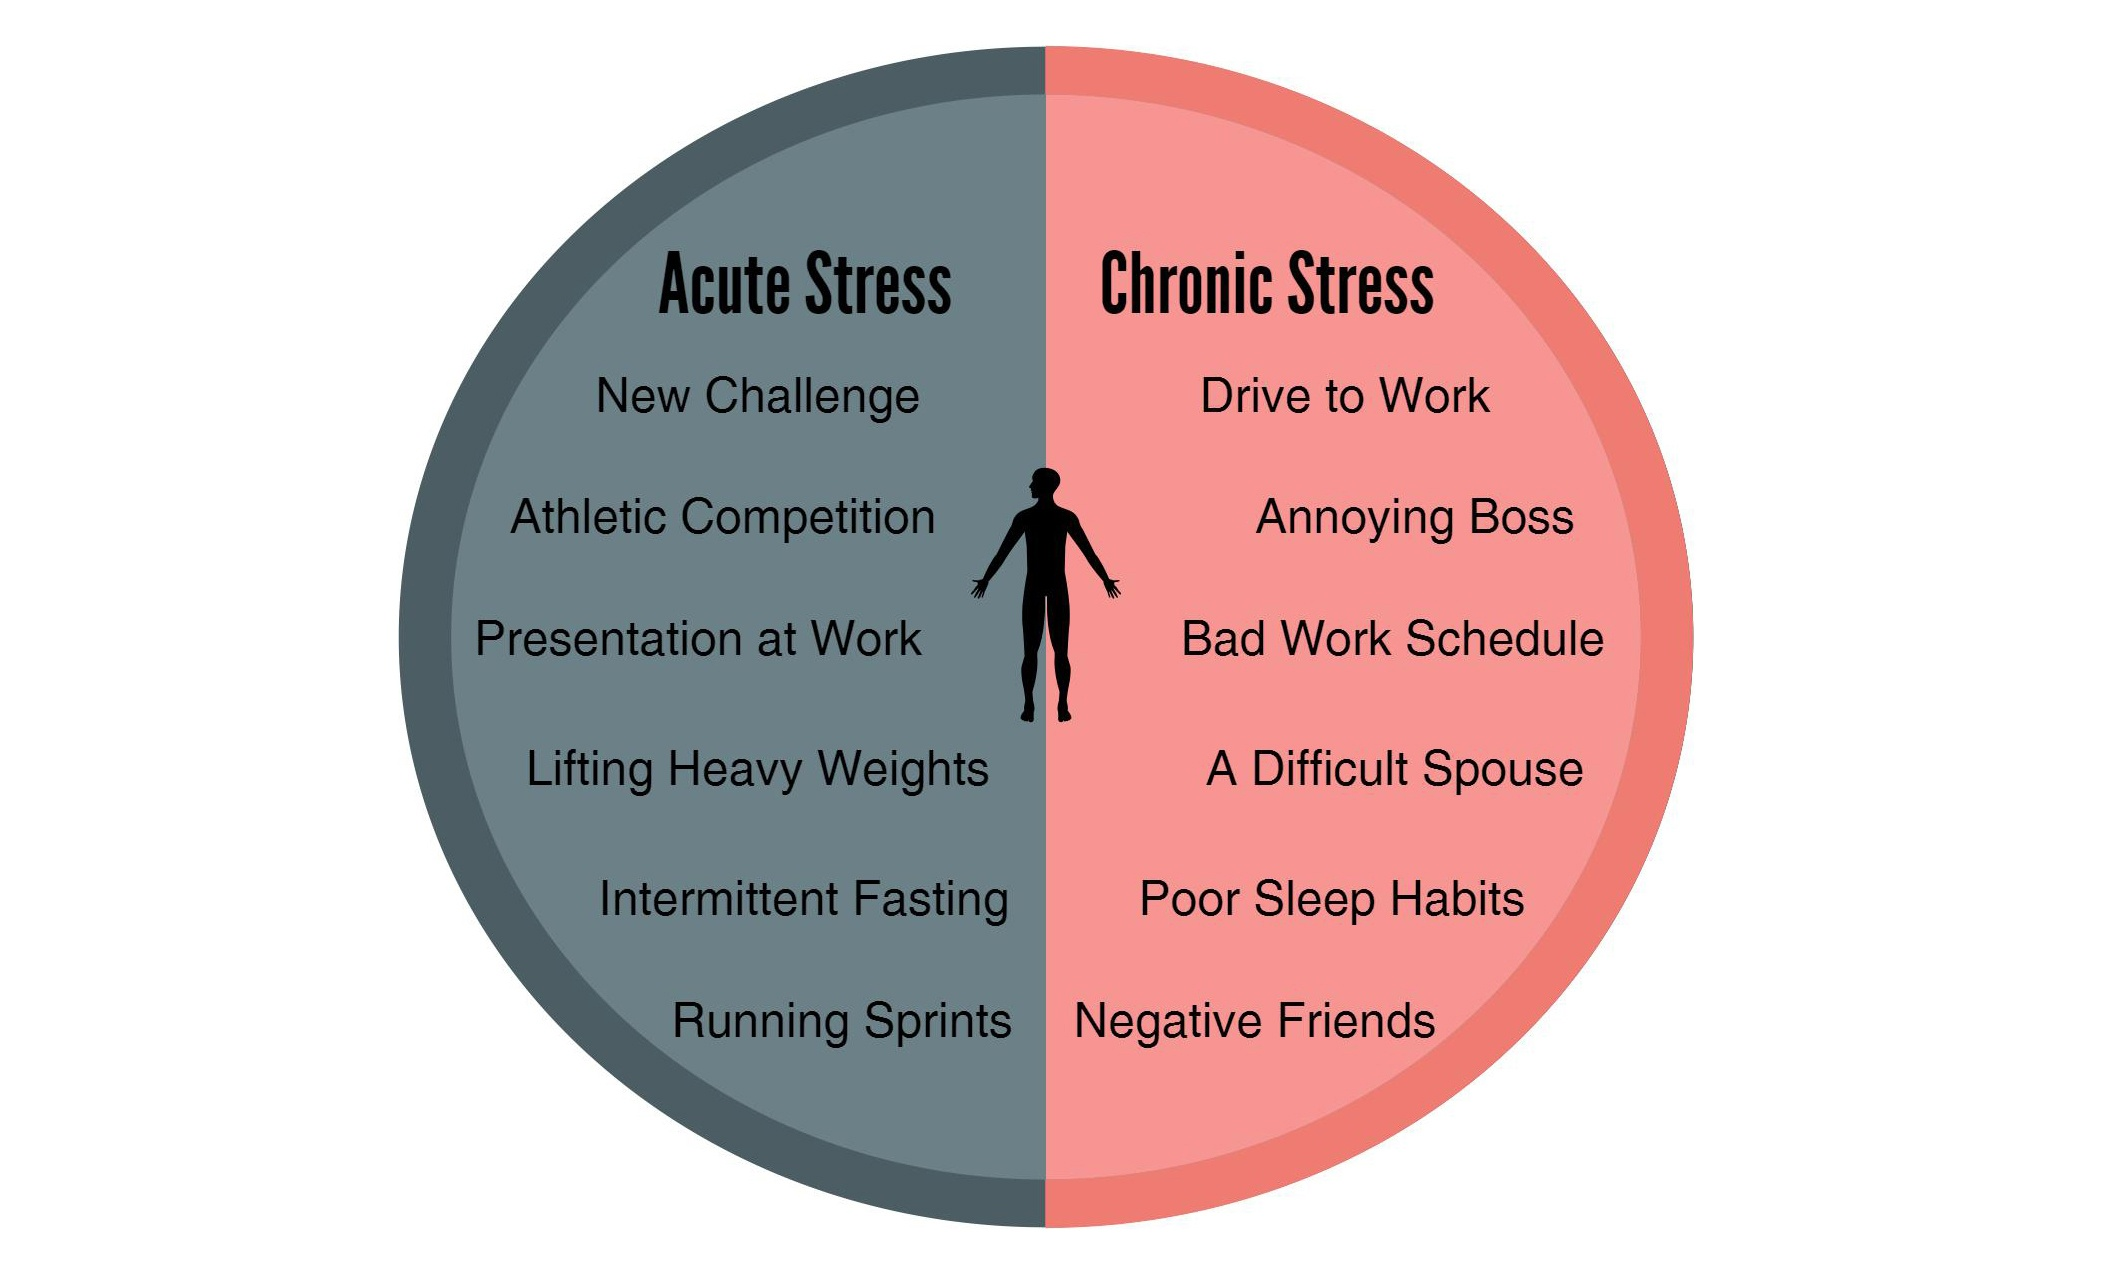 Stress and Cancer - It's Bad, But Not All Bad